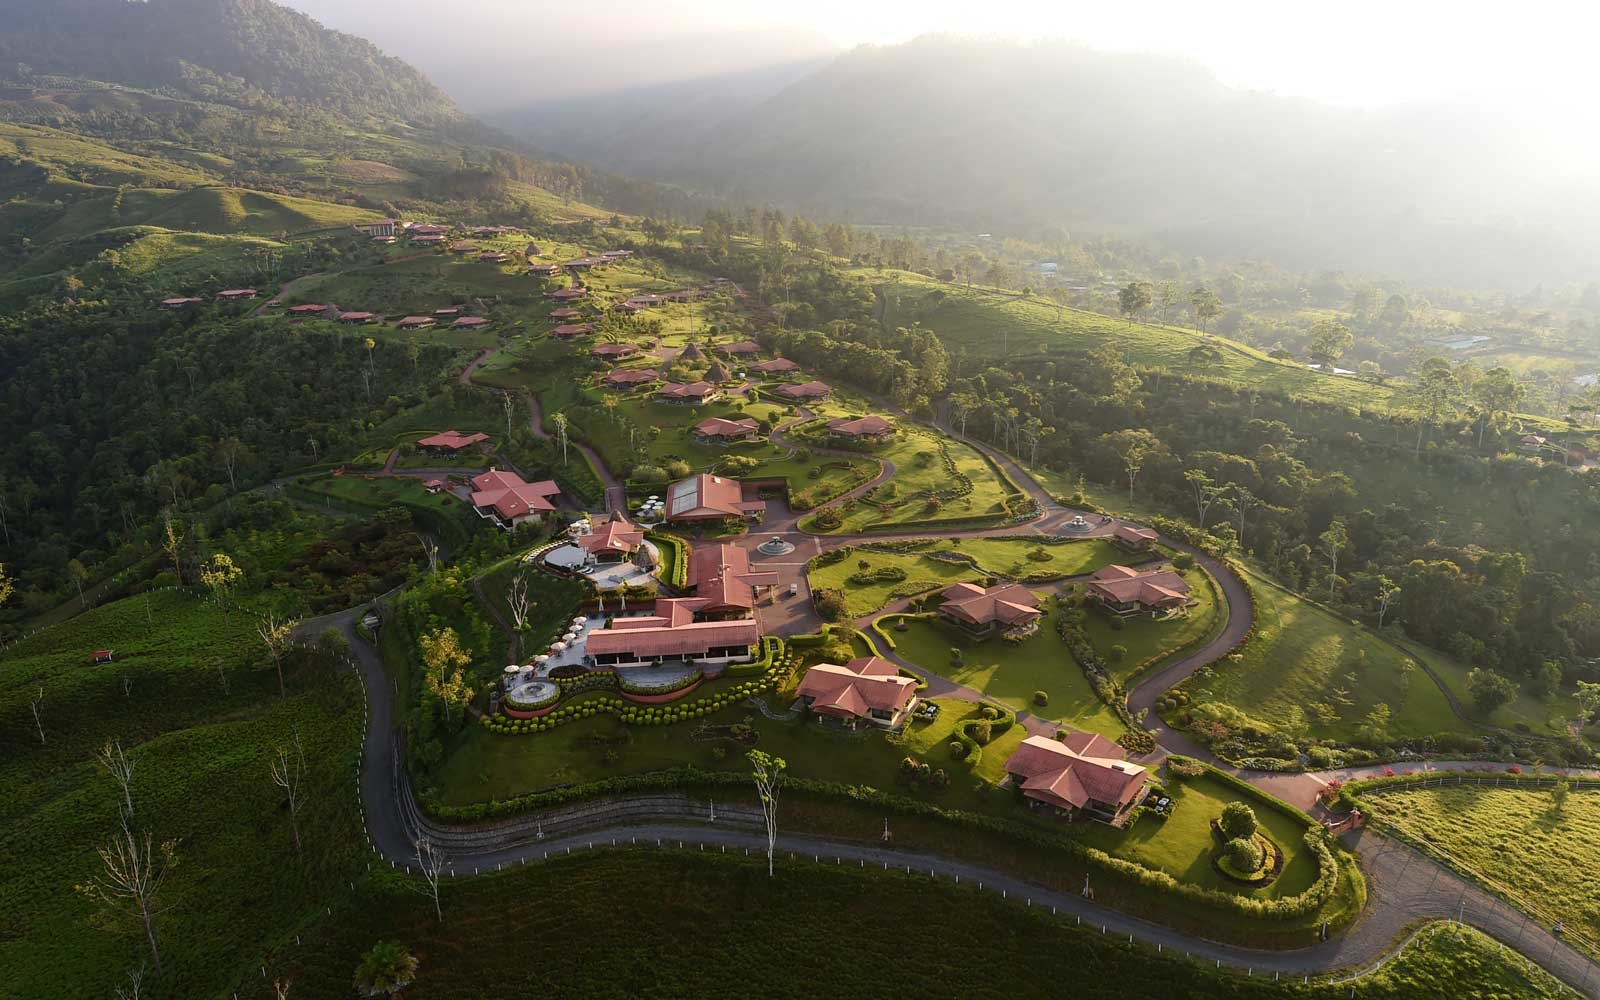 Overview of the Hacienda AltaGracia, an Auberge resort